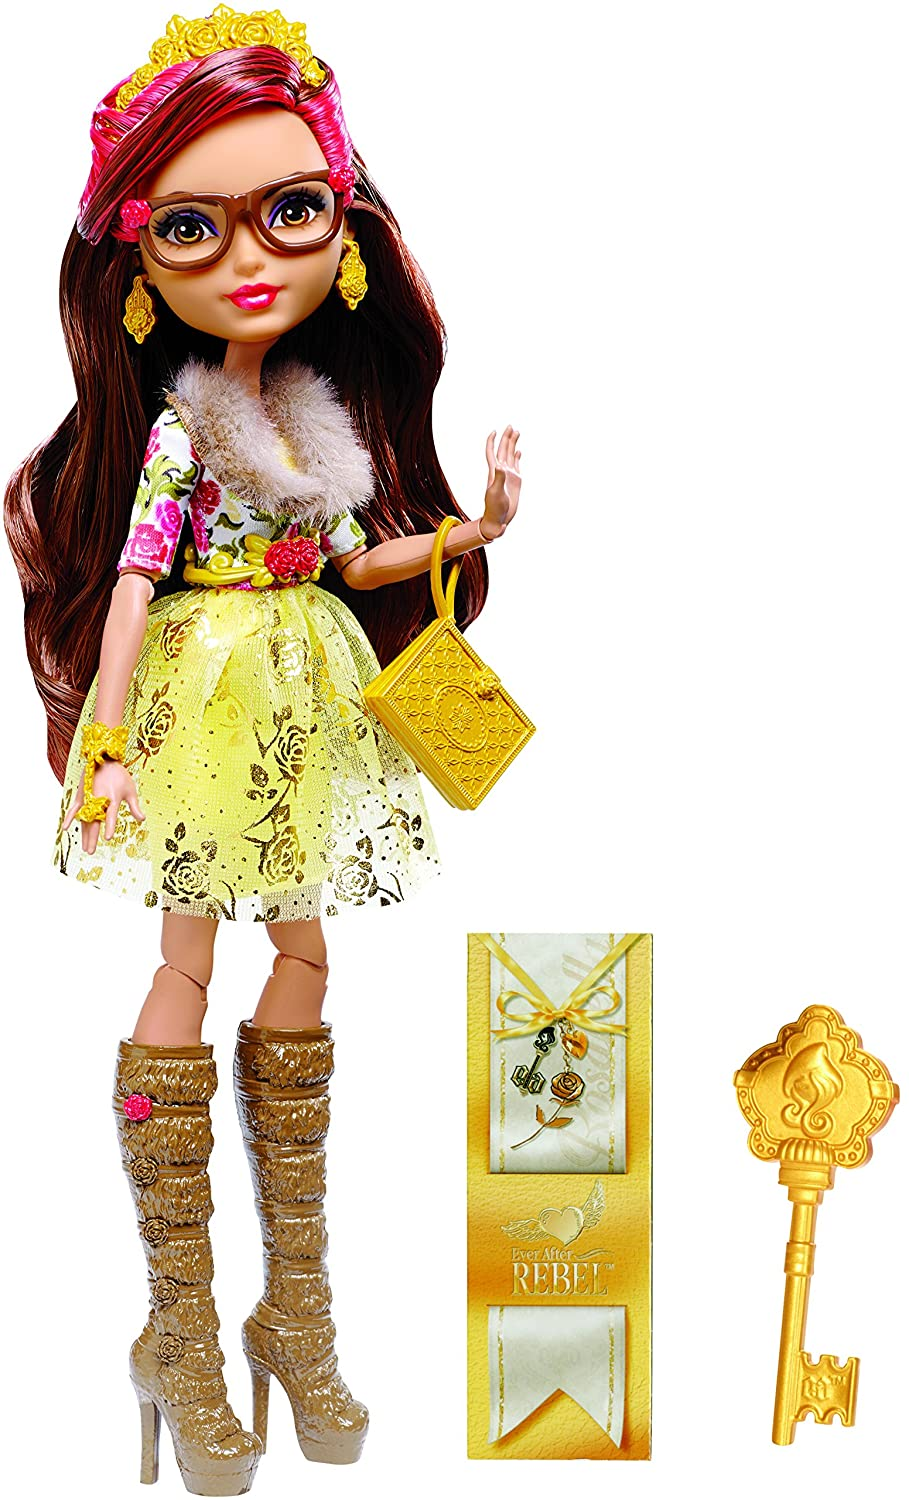 Details about Ever After High Rosabella Beauty Doll REBEL Daughter of ...